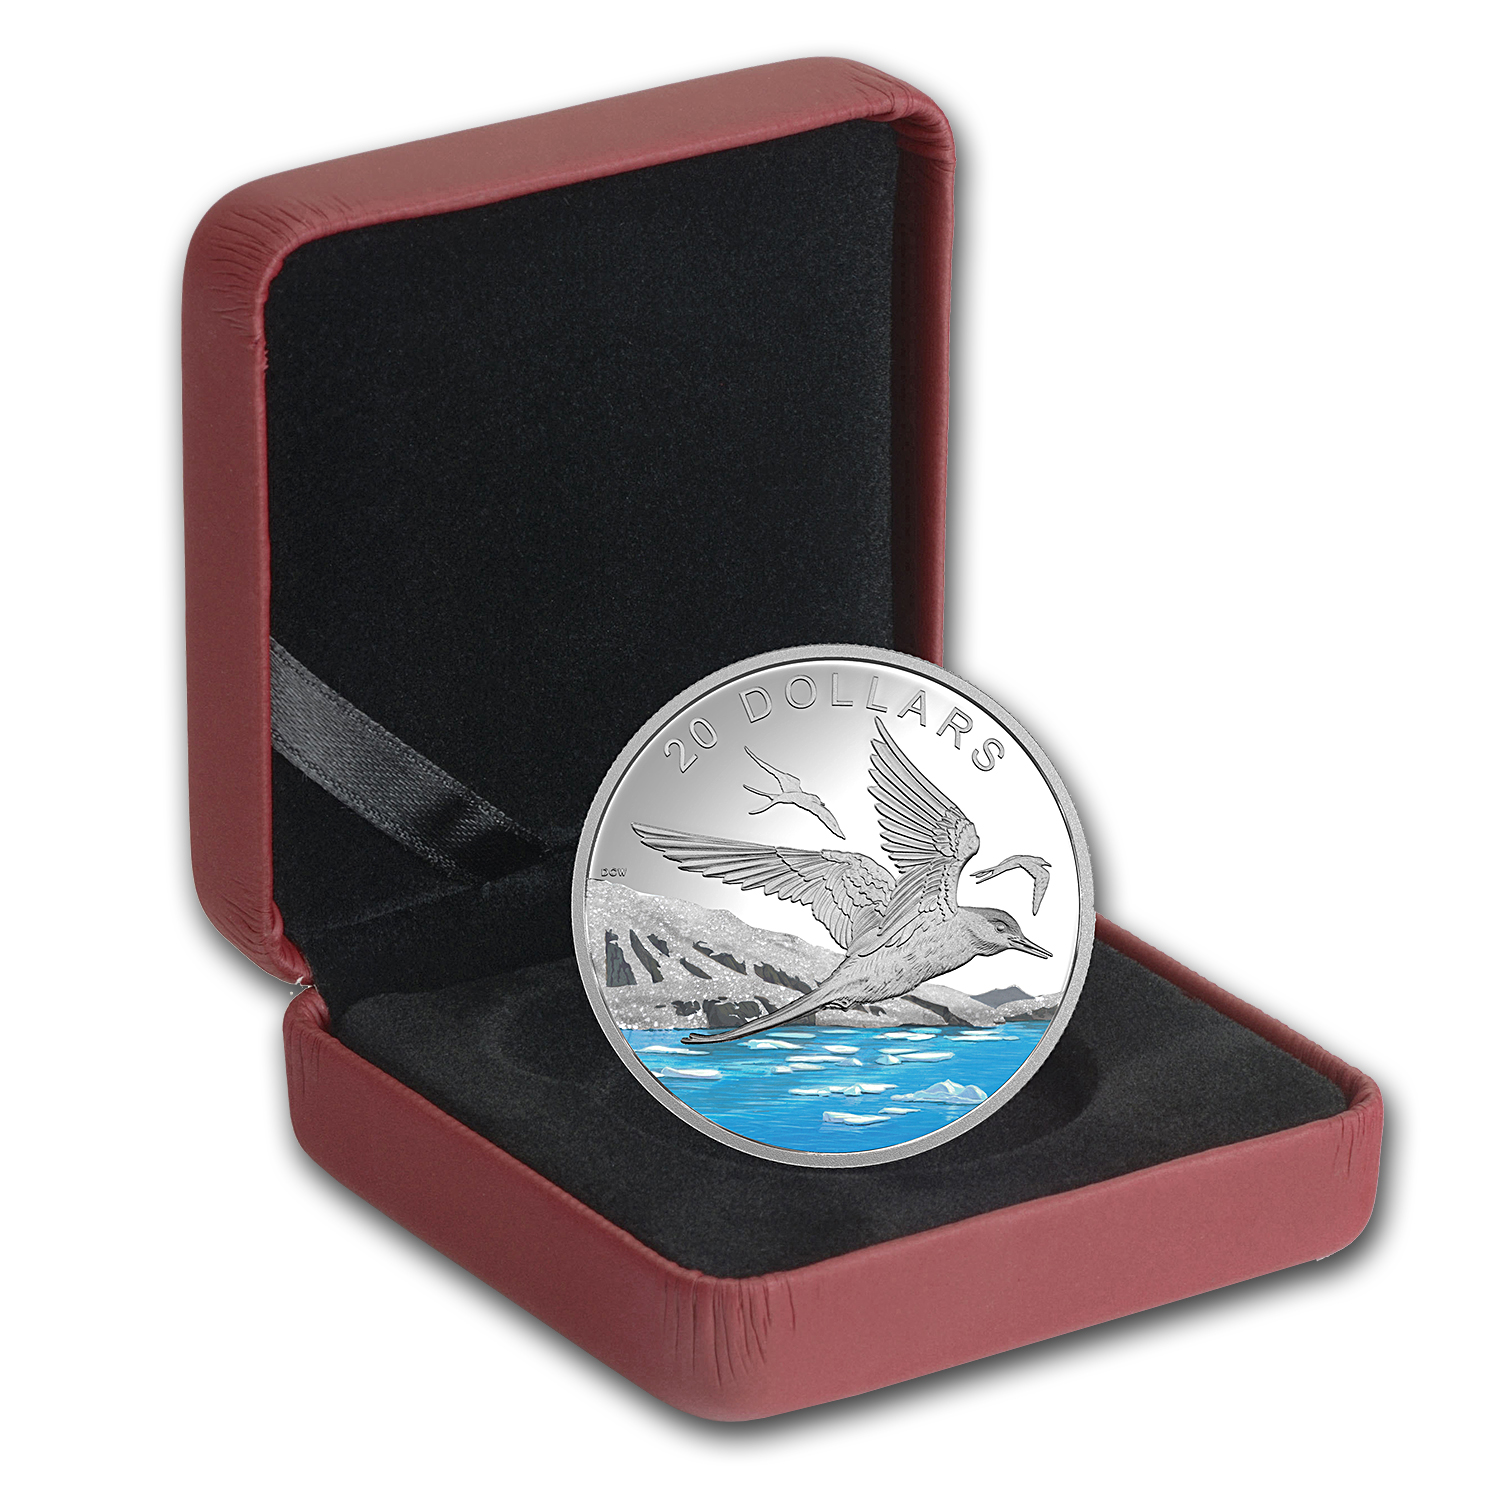 2017 1 oz Silver Proof $20 Glistening North: The Arctic Tern